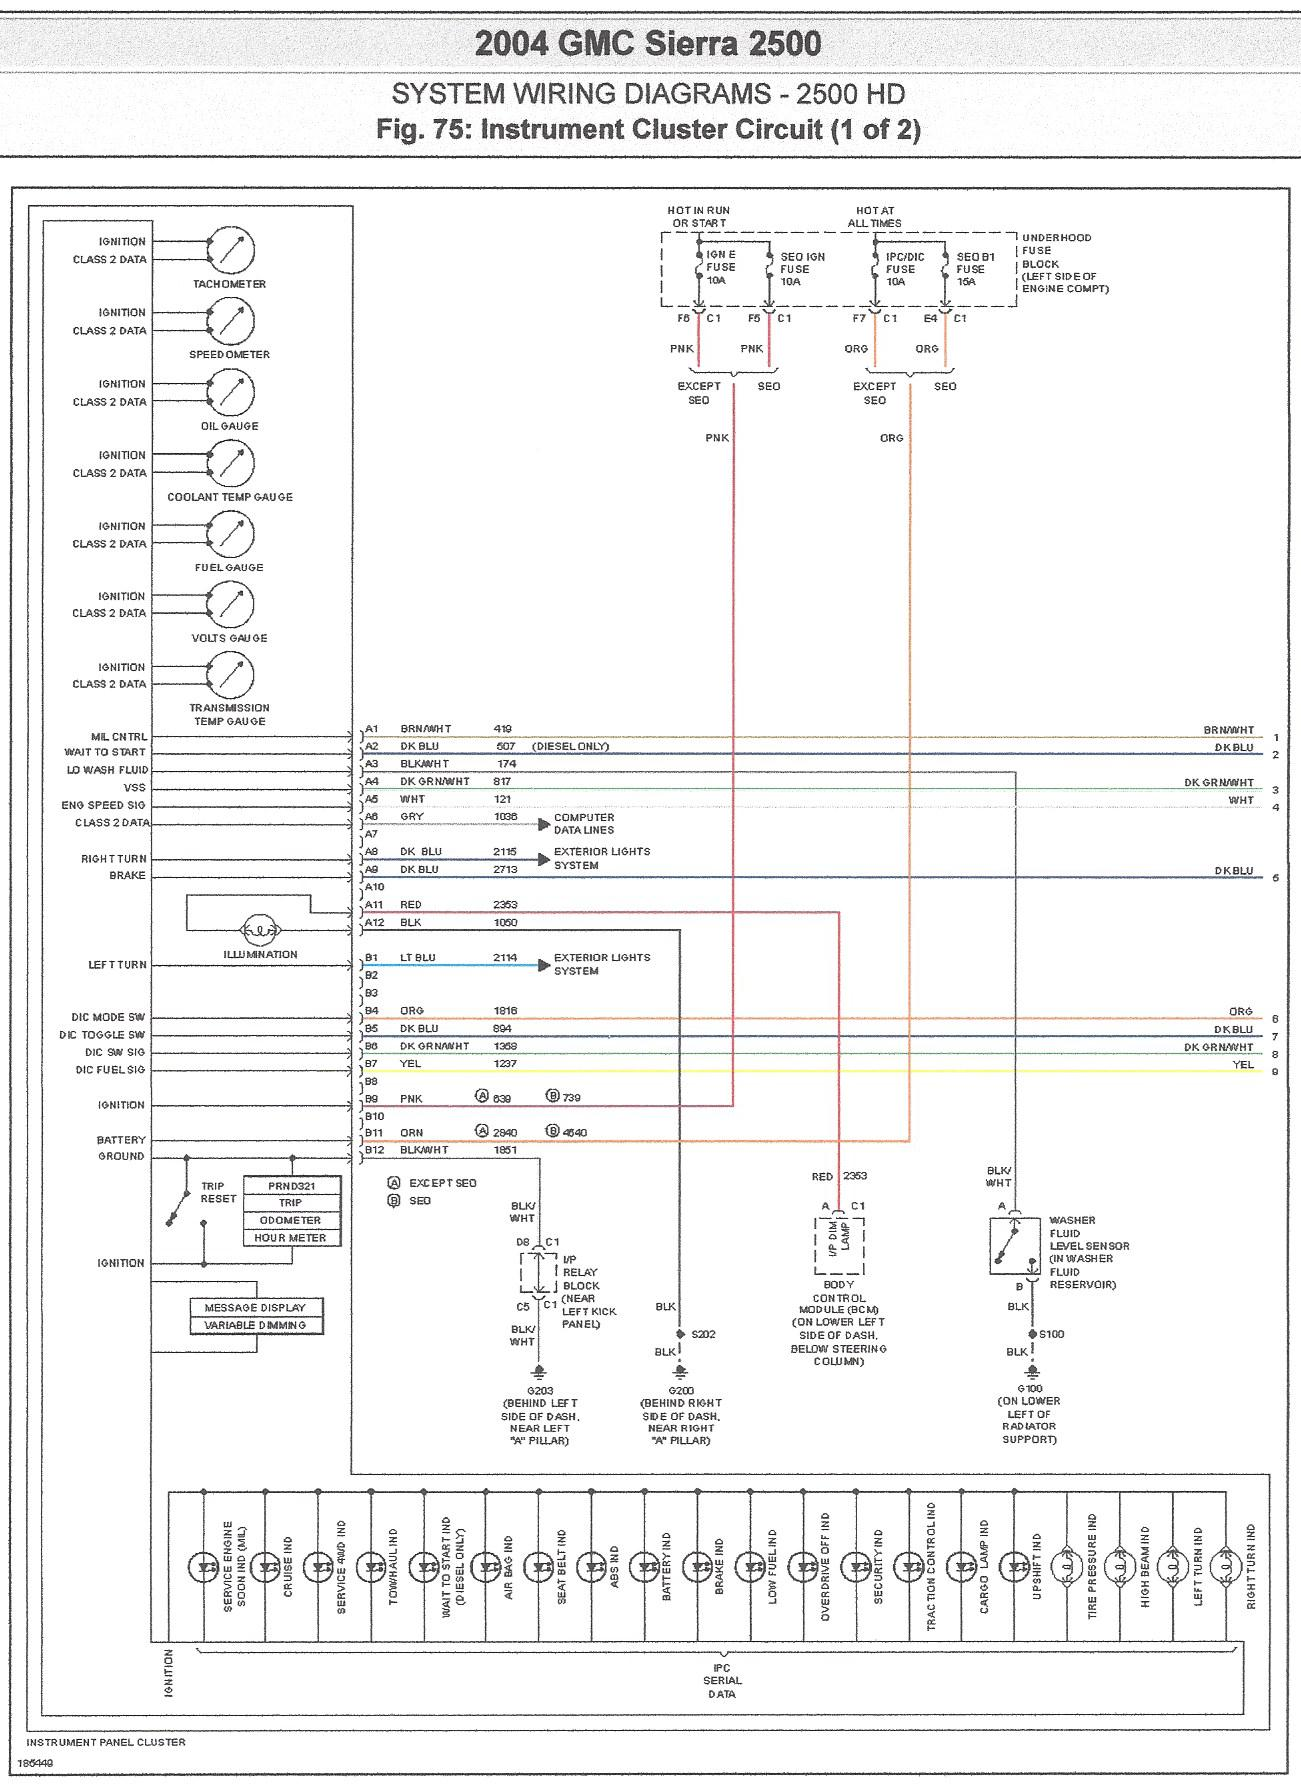 2004 Gmc Yukon Wiring Diagram from static-resources.imageservice.cloud